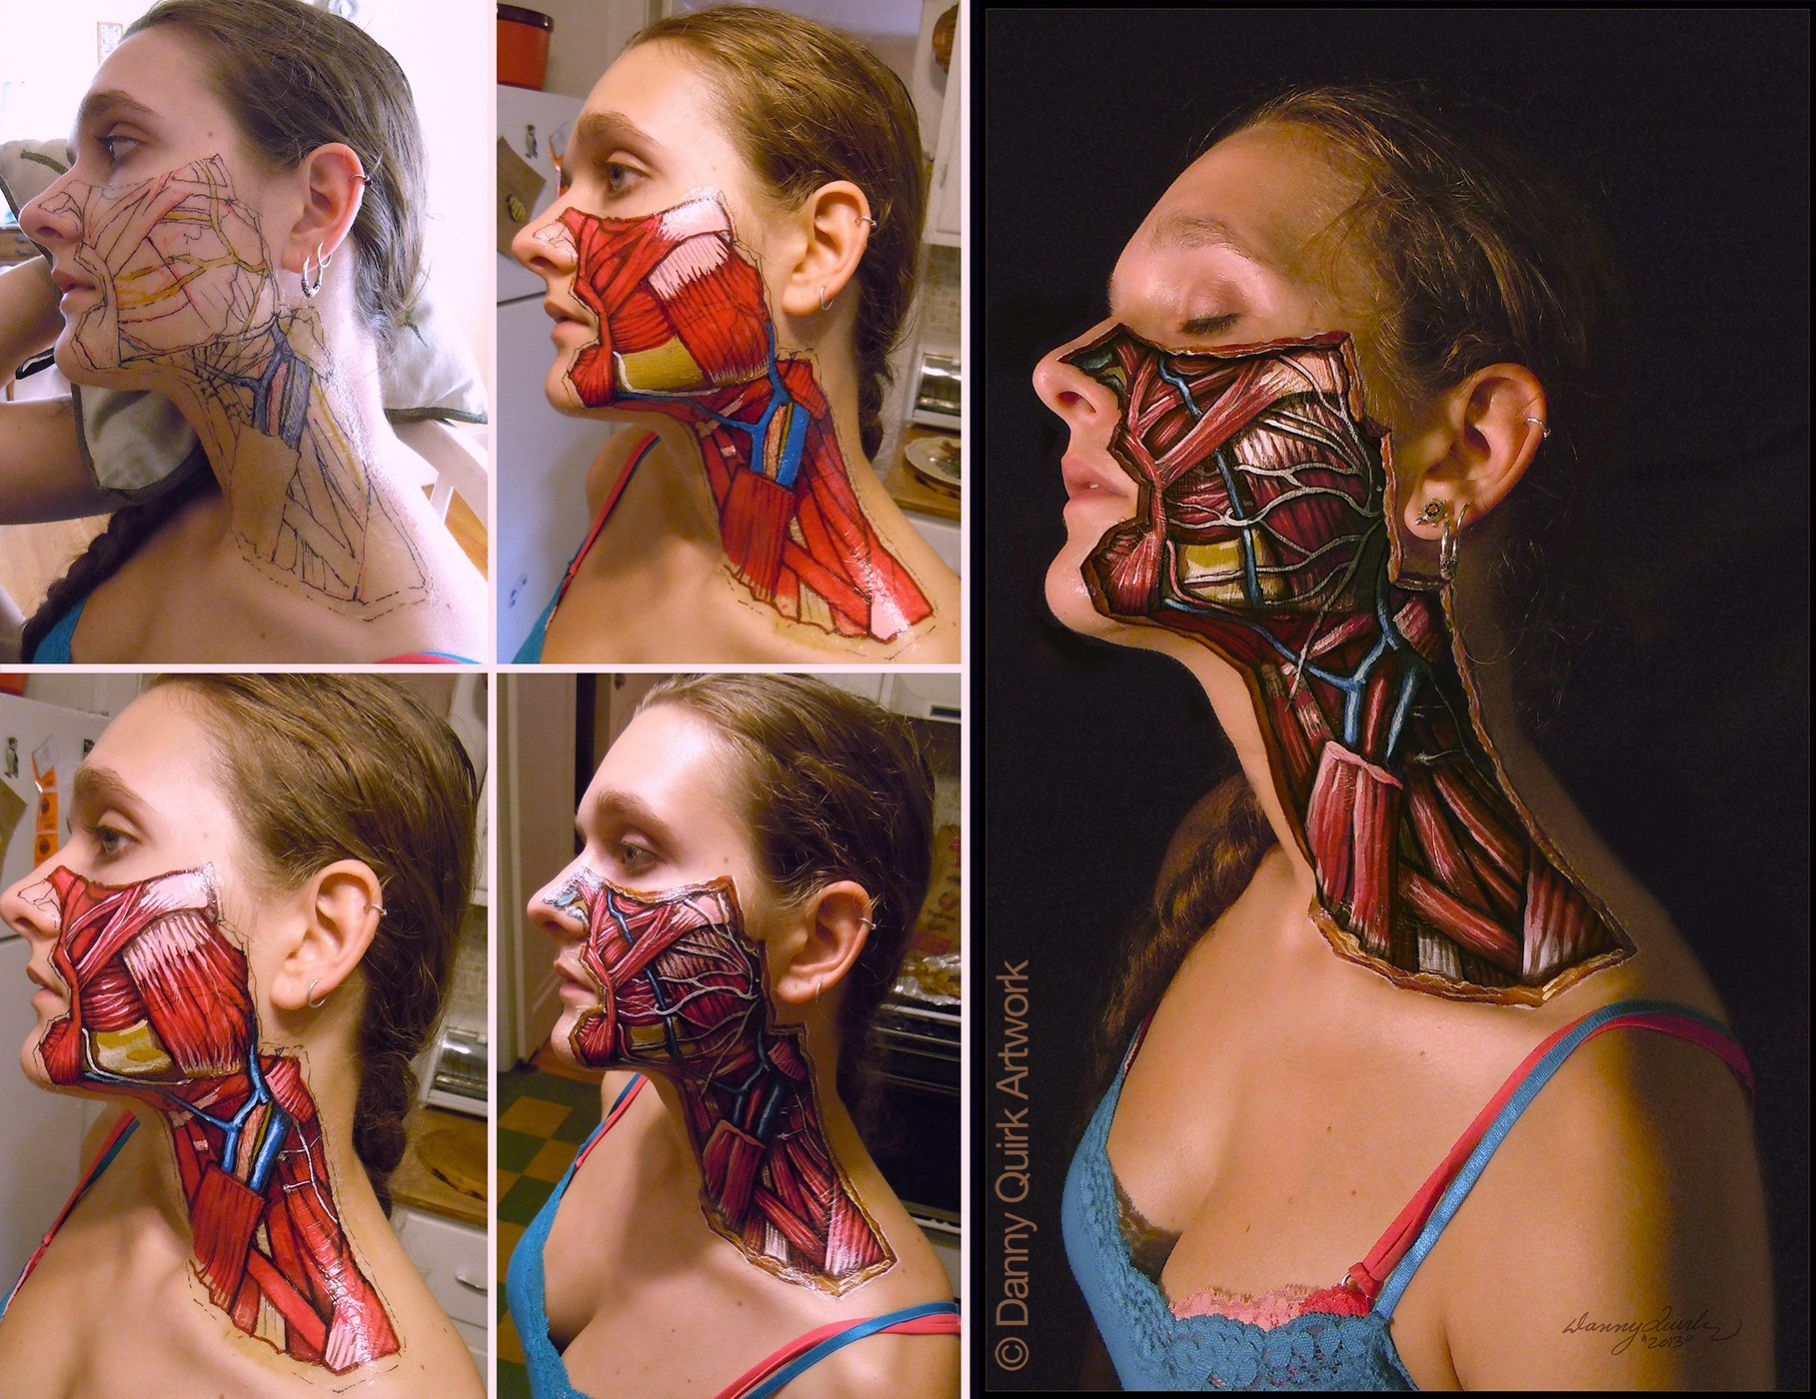 Artist Danny Quirk shared some anatomical pieces and answered some ...